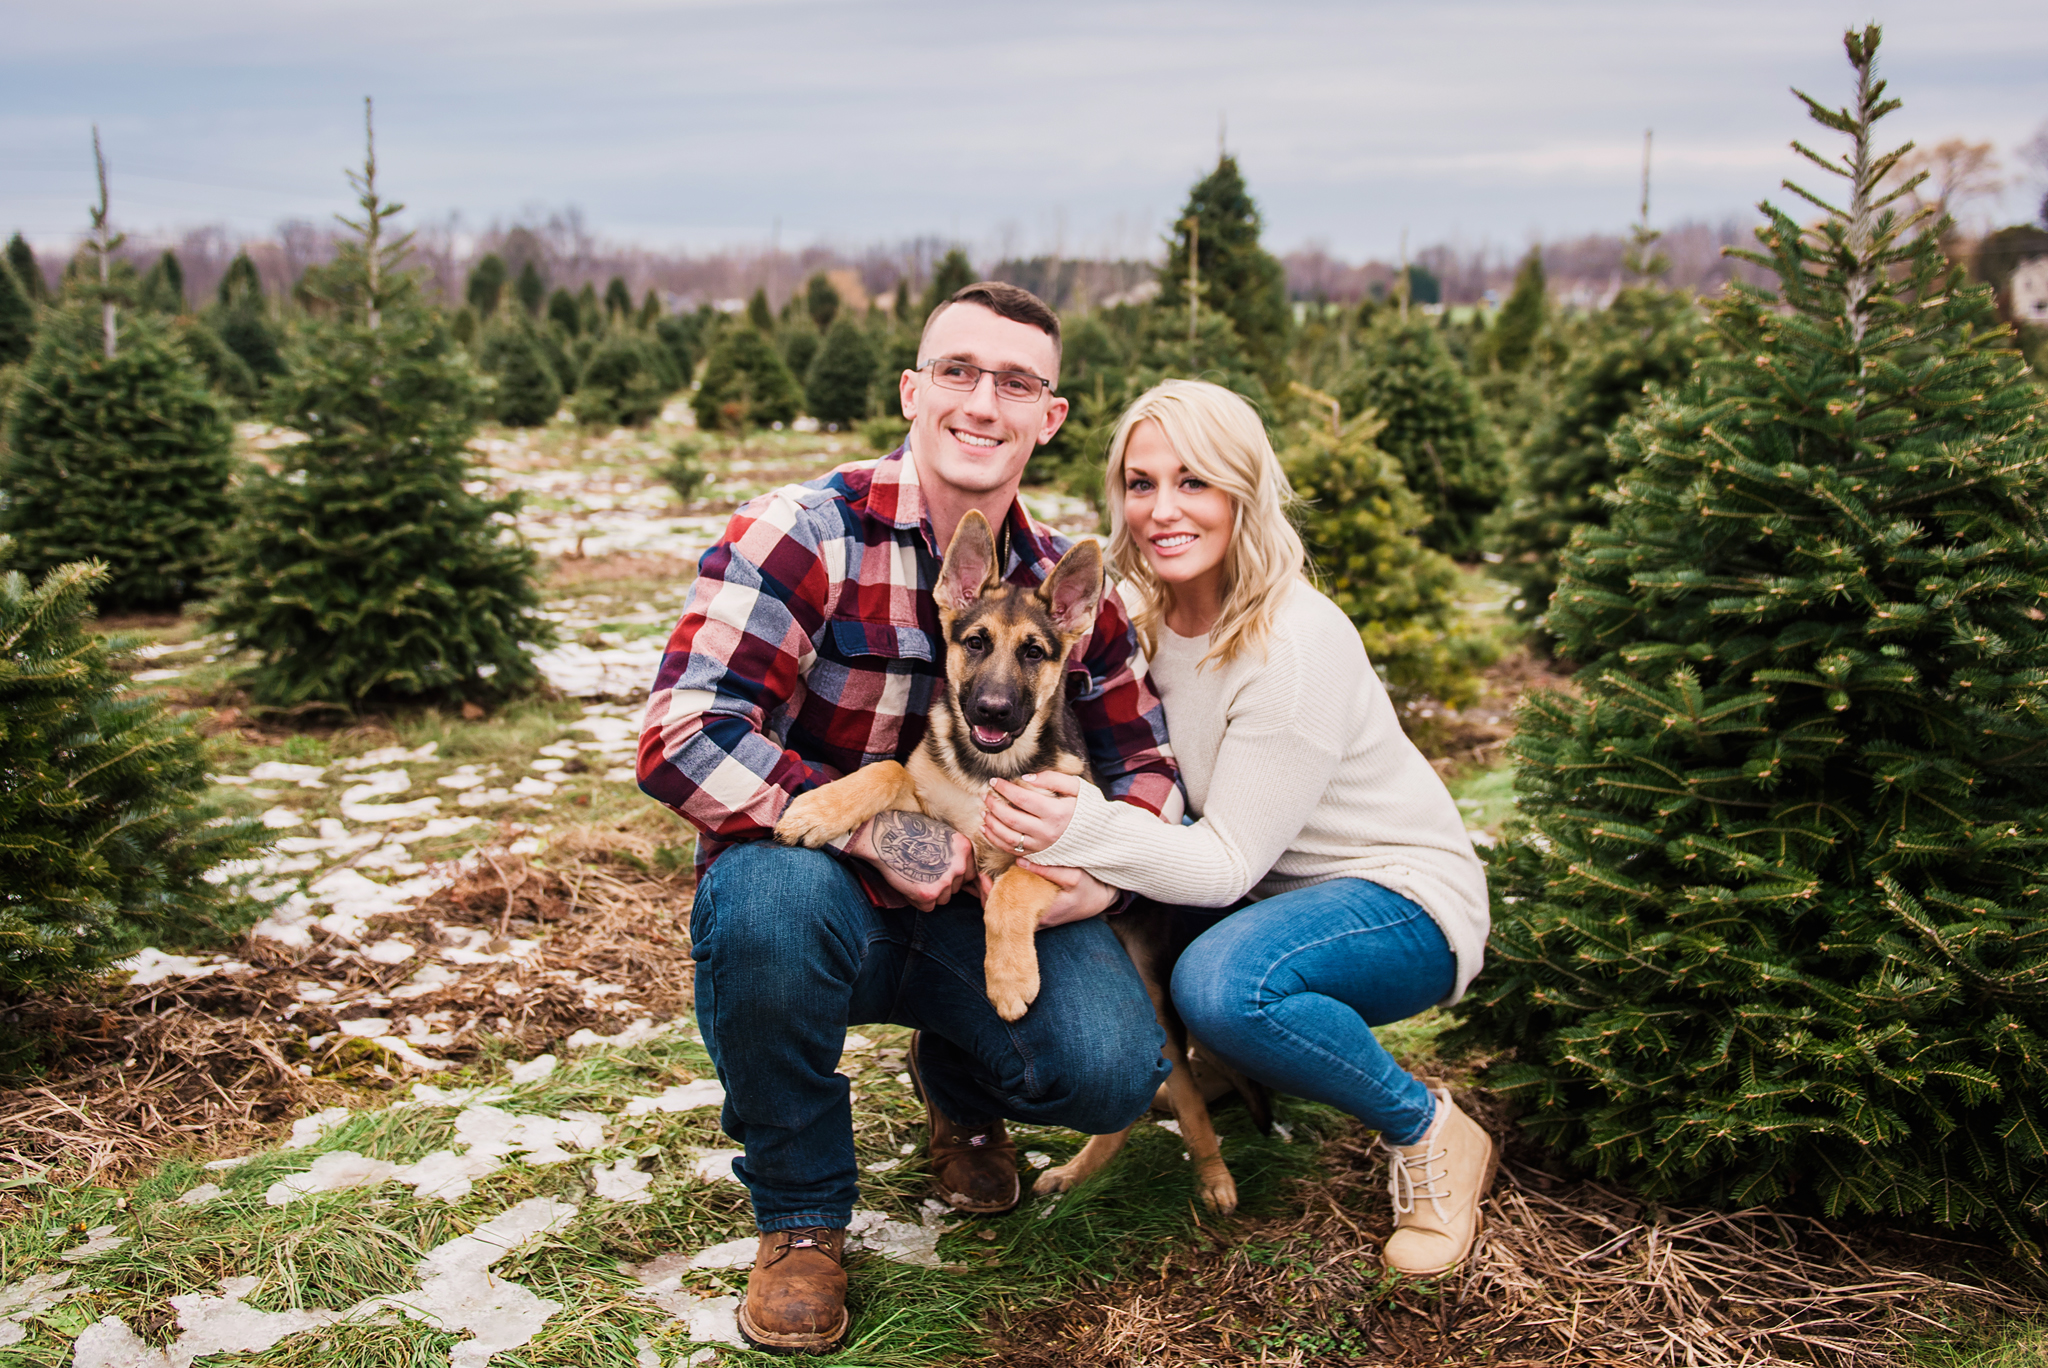 Woody_Acres_Rochester_Family_Session_JILL_STUDIO_Rochester_NY_Photographer_DSC_2420.jpg